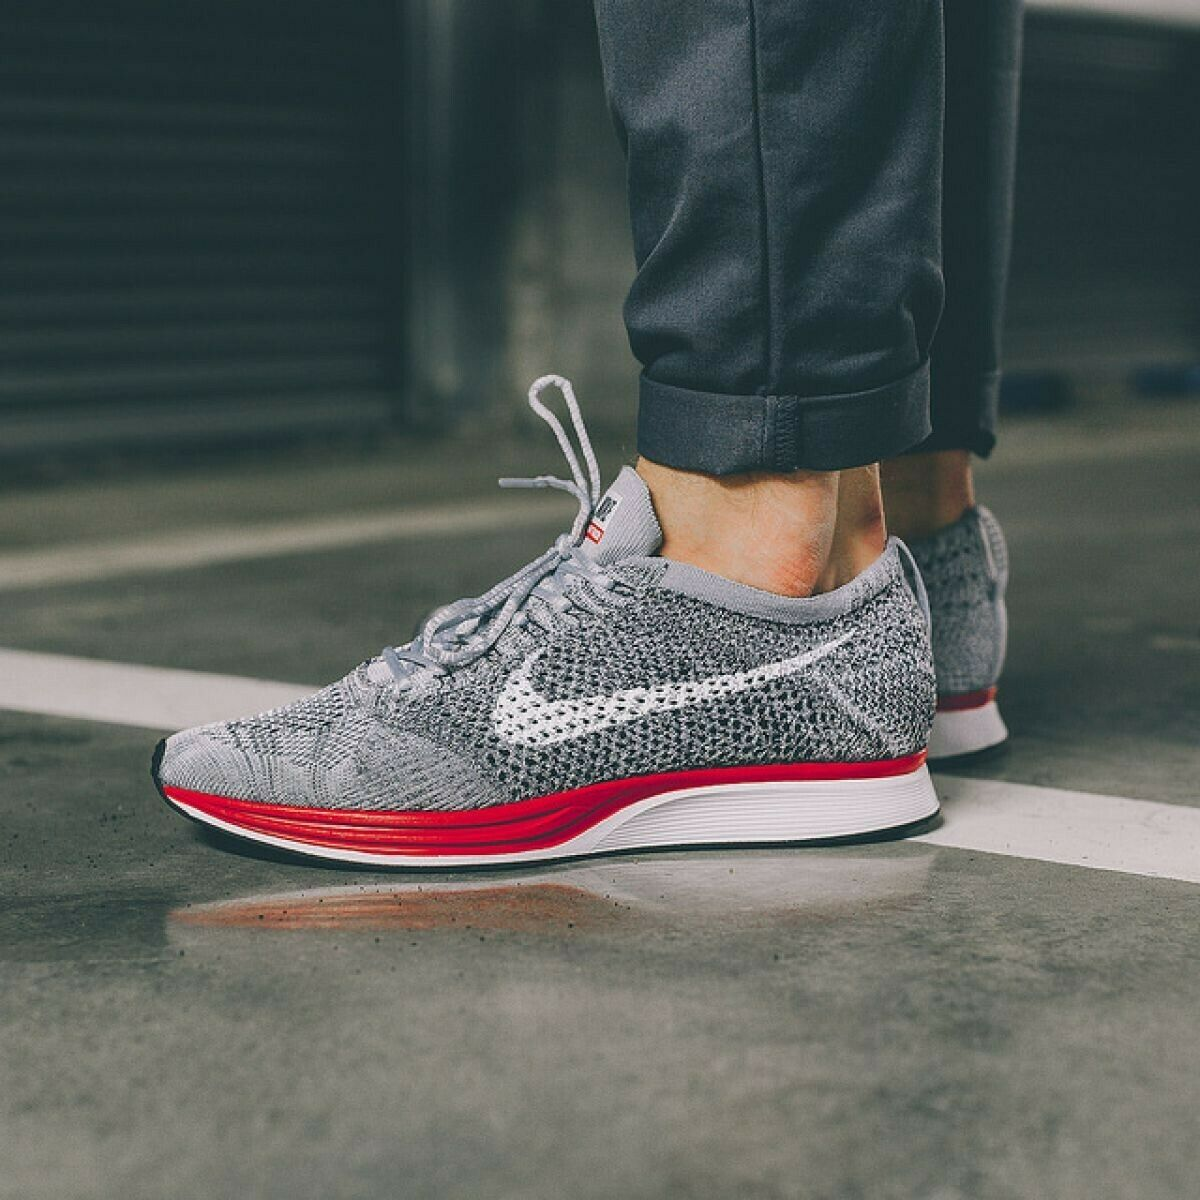 MENS 9.5 WOMENS 11 NIKE FLYKNIT RACER SHOES GREY RED PLATINUM NO PARKING 526628